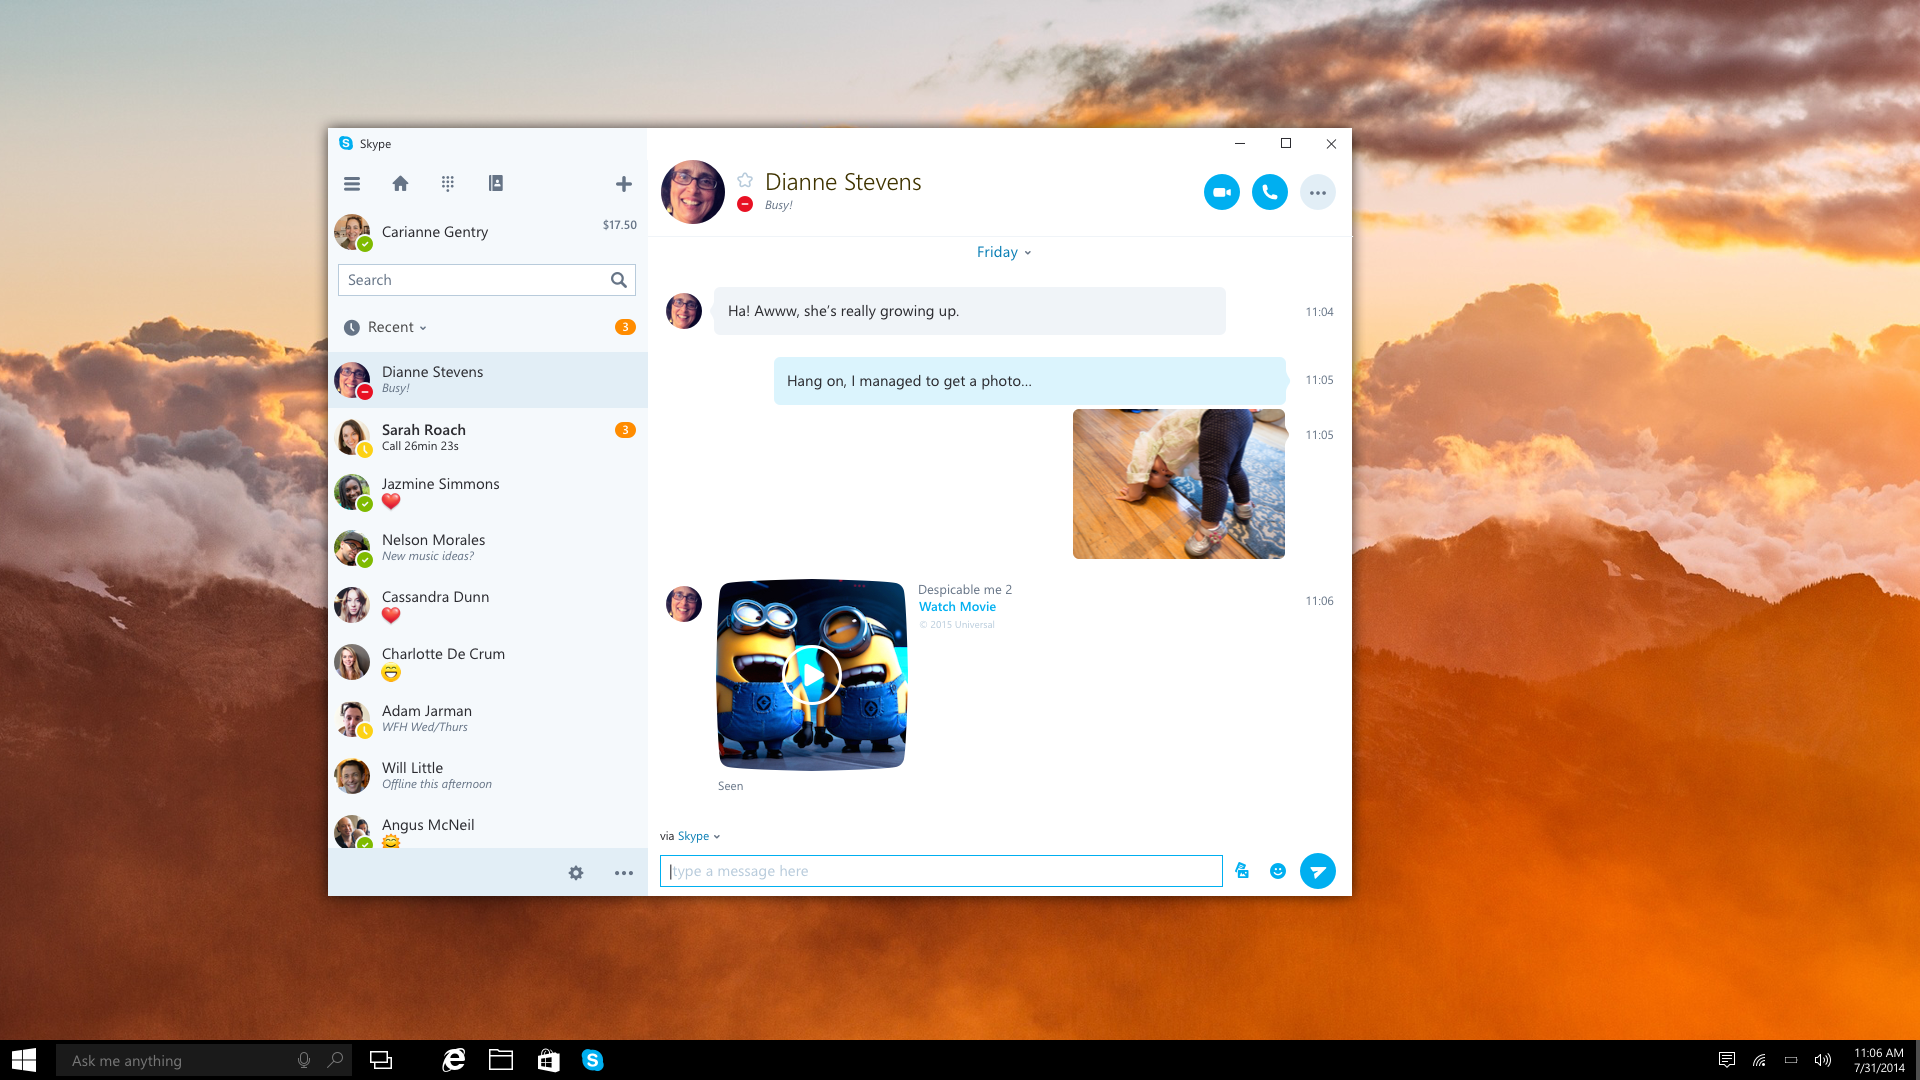 The new UWP Skype app looks like a slightly tidier version of the current Win32 app.